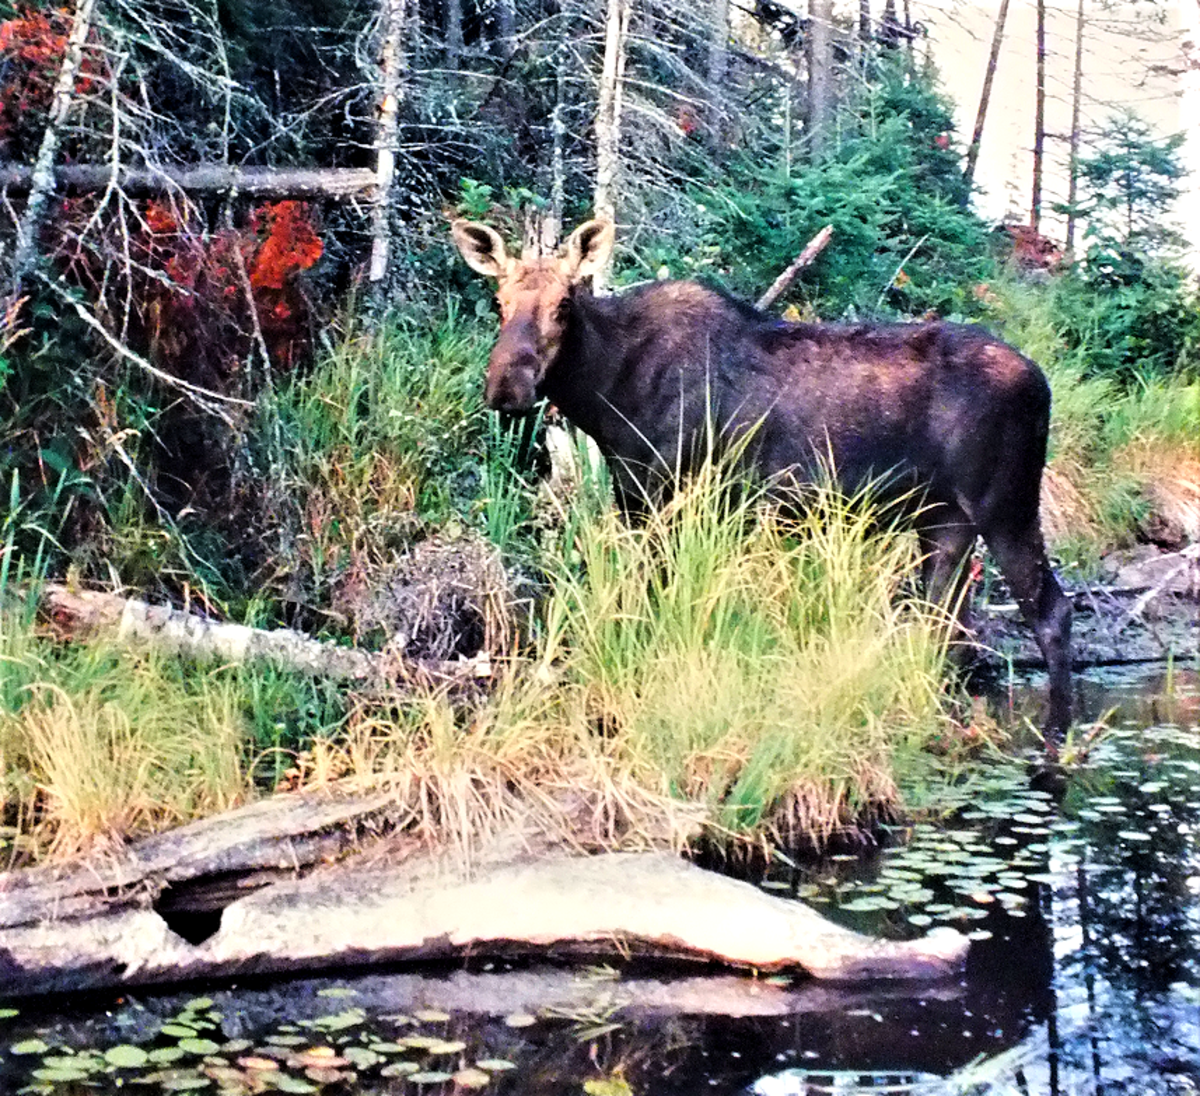 Moose picture taken at Algonquin Provincial Park. Converted to digital 24 years later.